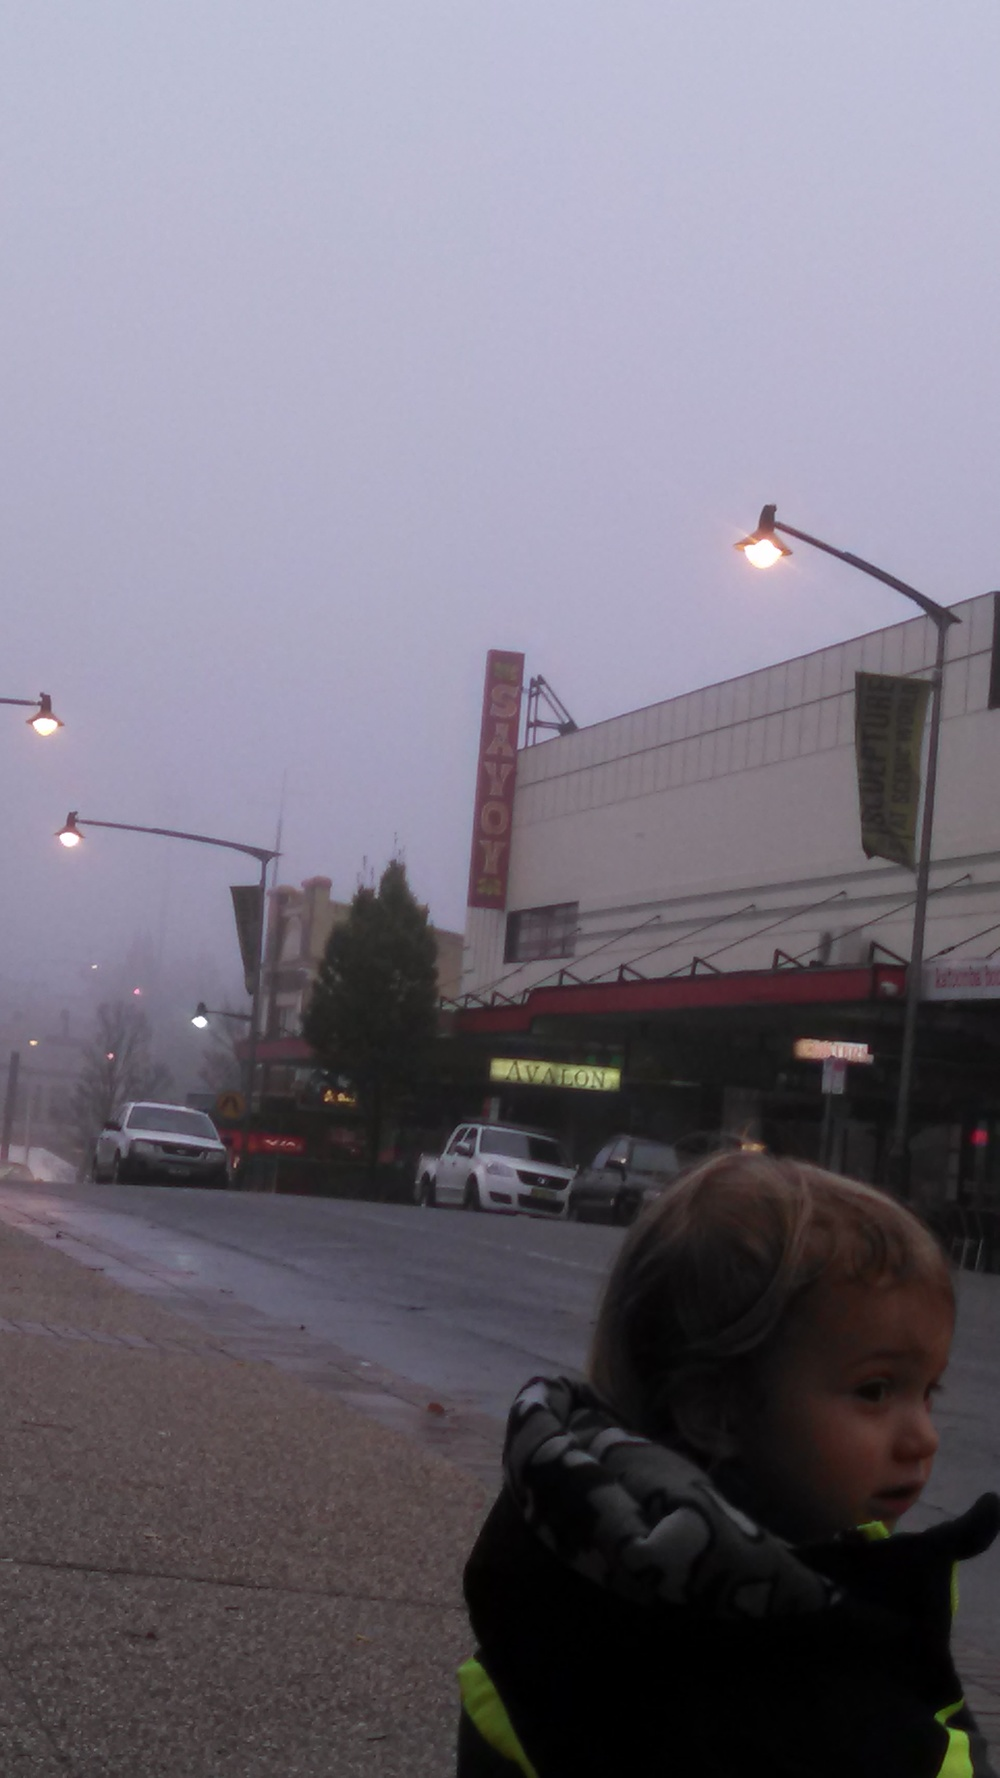 Up in the clouds- waiting for the bus in Katoomba.